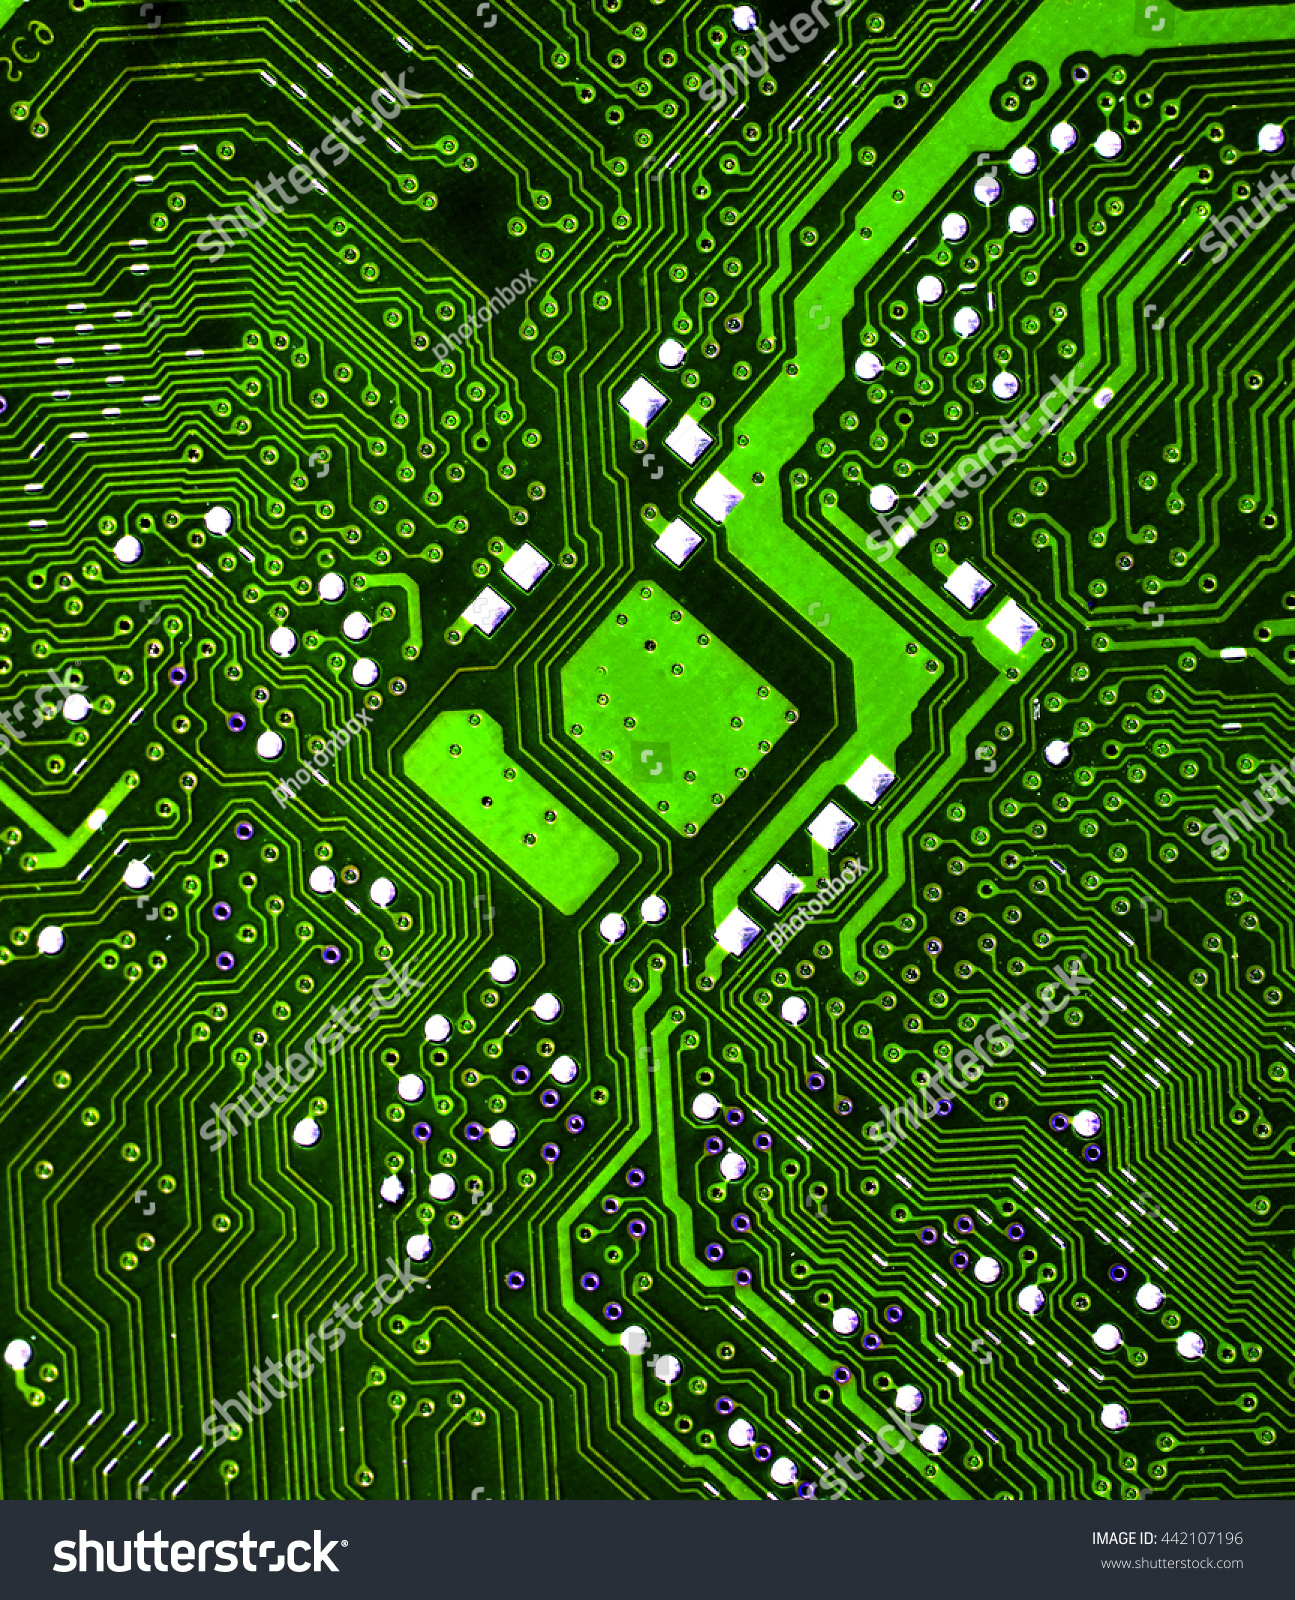 Royalty Free Green Microchip Pcb Board Integrated 442107196 Stock Electronic Circuit Chip Image Electric Computer Parts Processor Abstract Background Photo